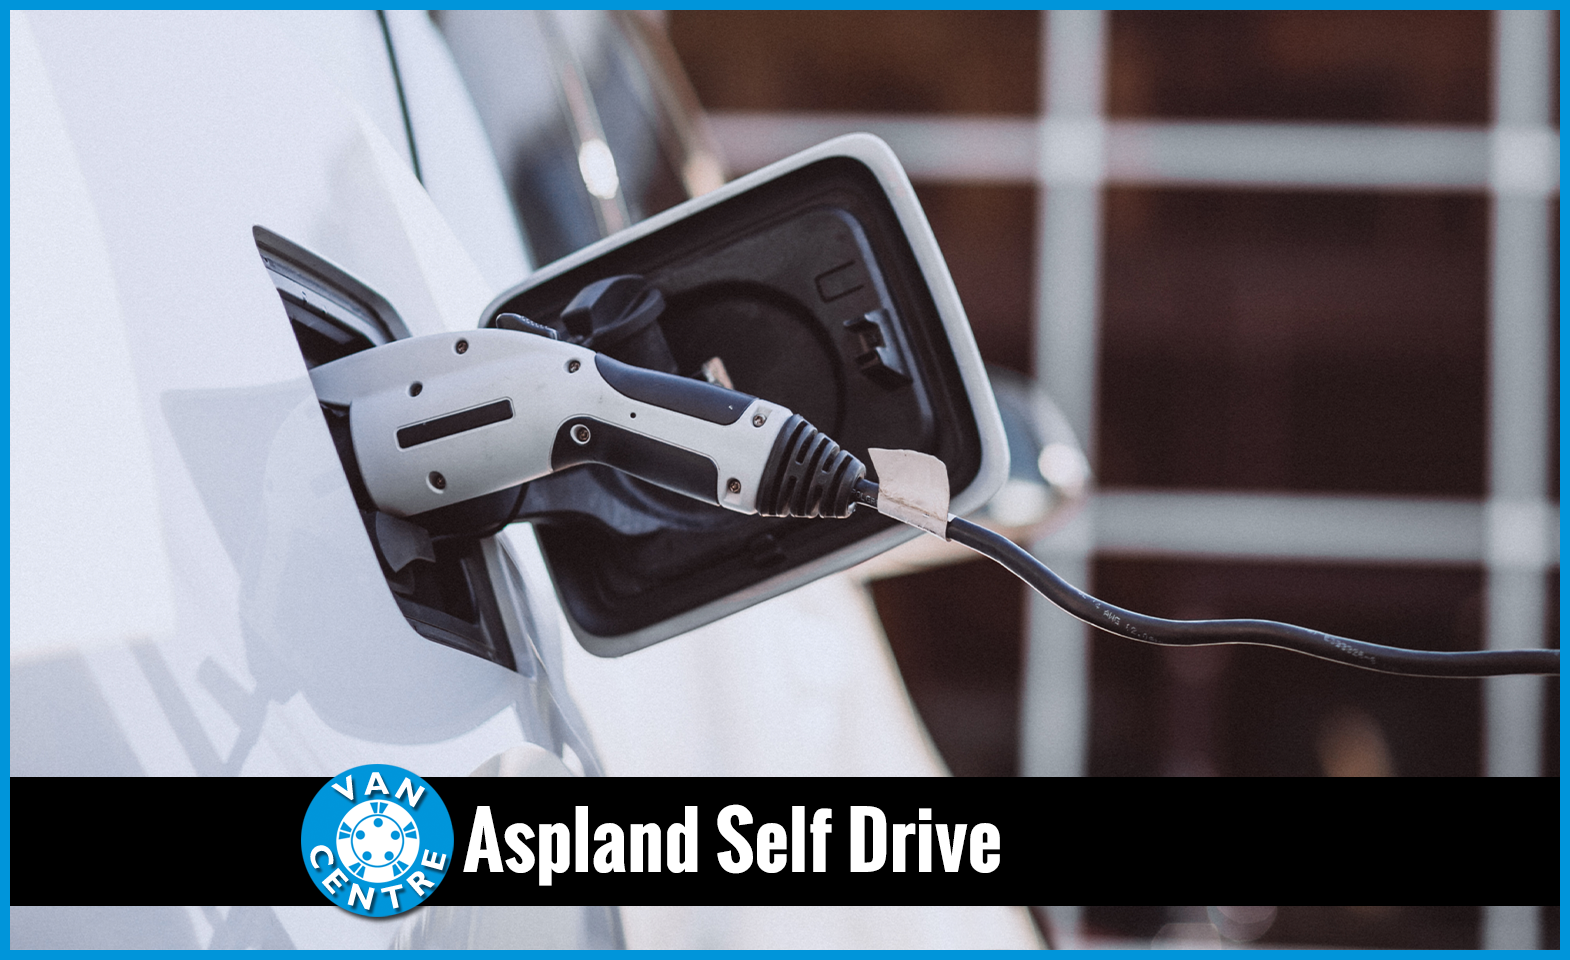 Electric vans: key questions answered! | Aspland Self Drive